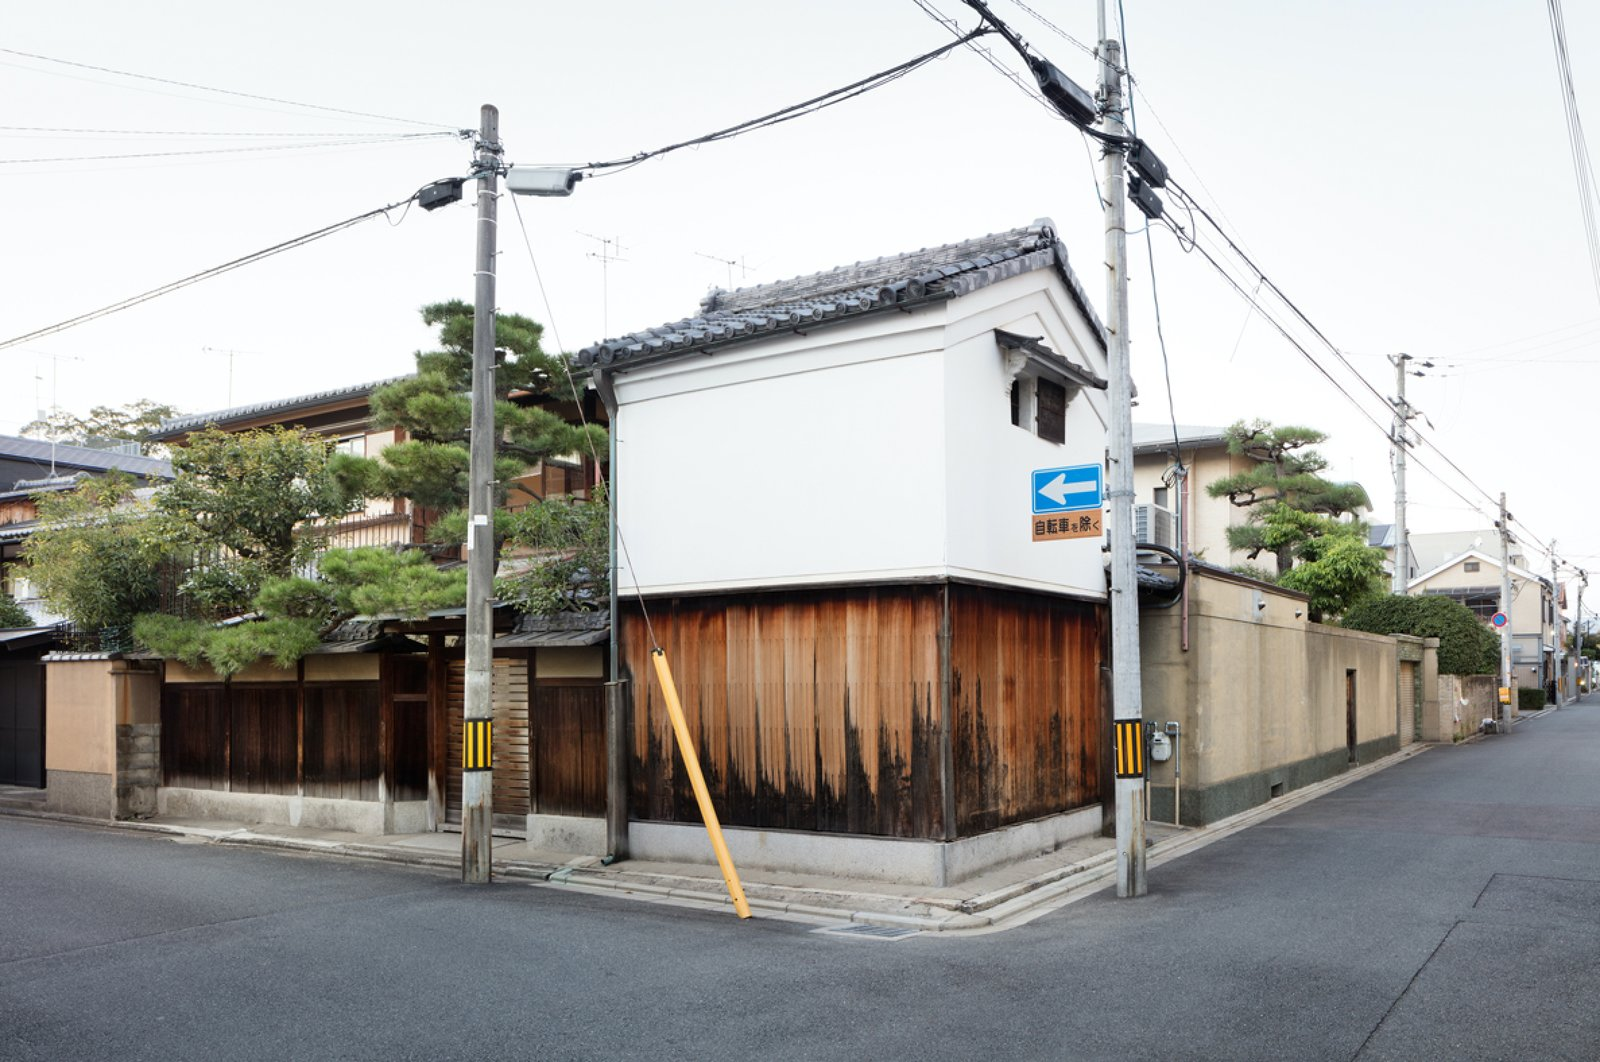 Exterior, Wood Siding Material, House Building Type, Gable RoofLine, Stucco Siding Material, and Tile Roof Material  Japanese Architec from A Minimalist Townhouse Provides Serene Accommodations in Historic Kyoto